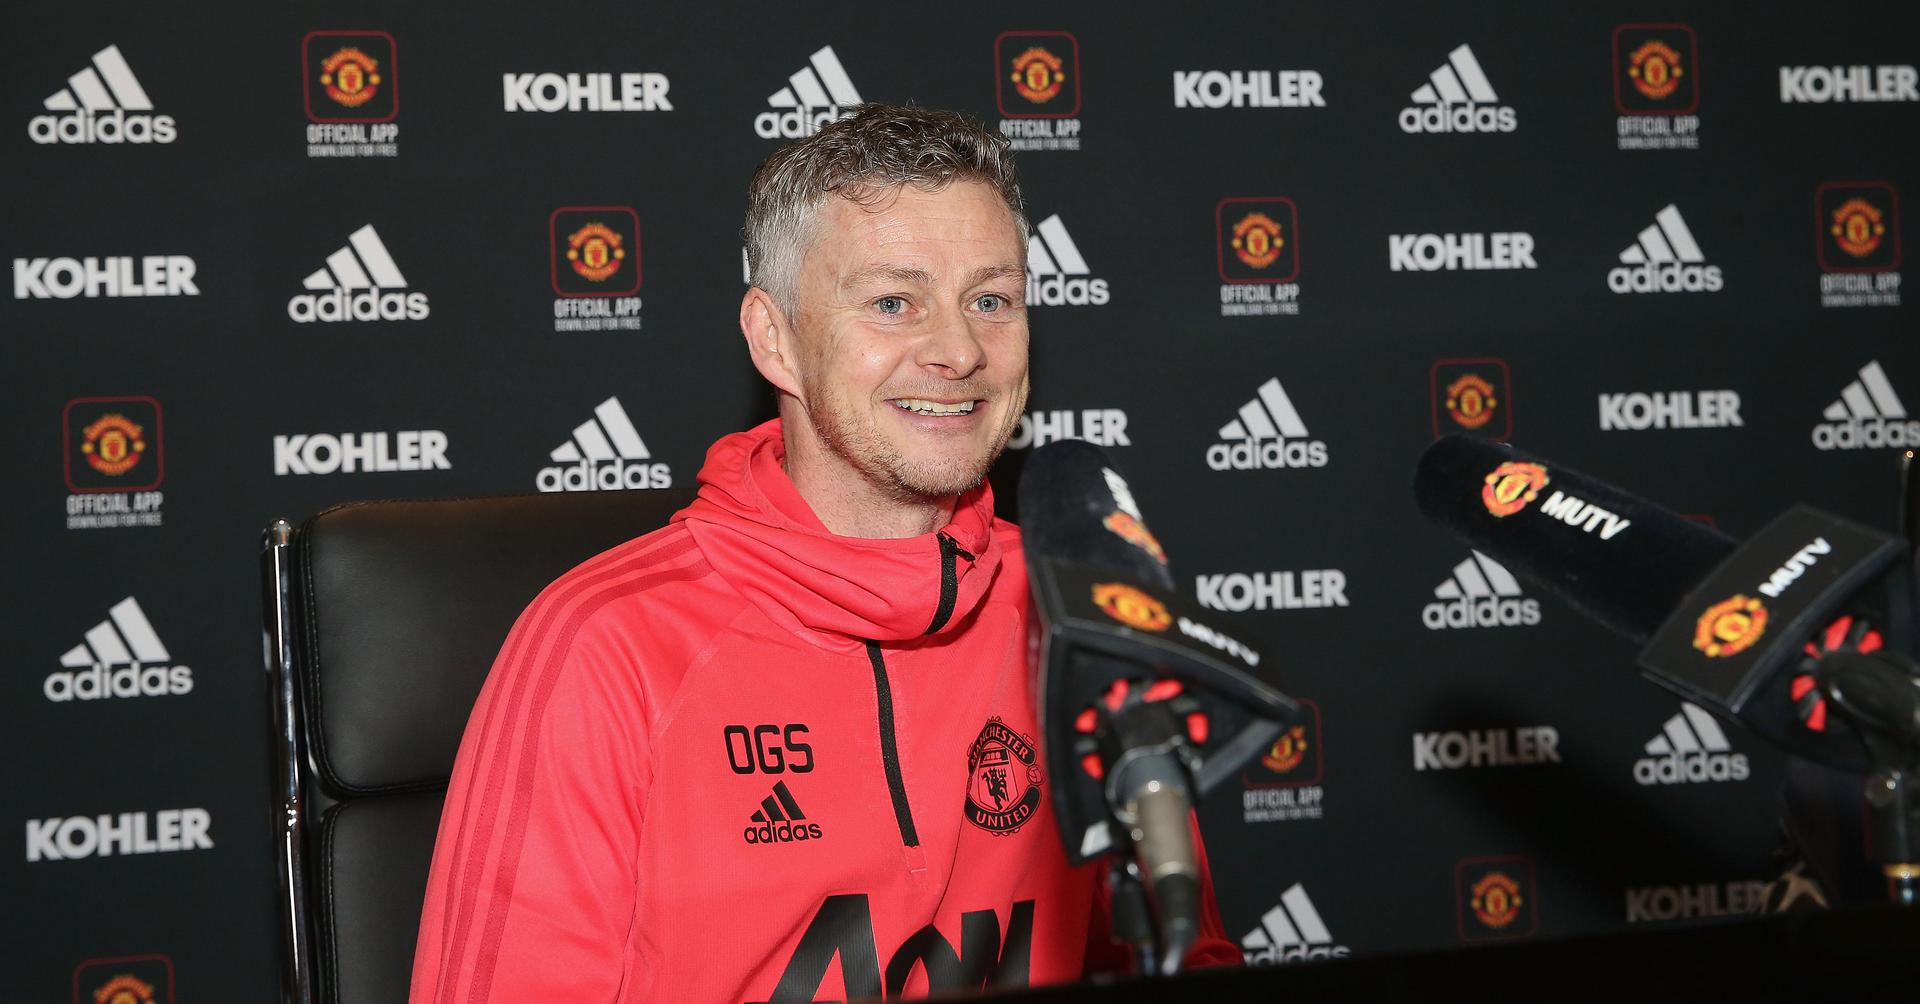 Ole Gunnar Solskjaer at a press conference